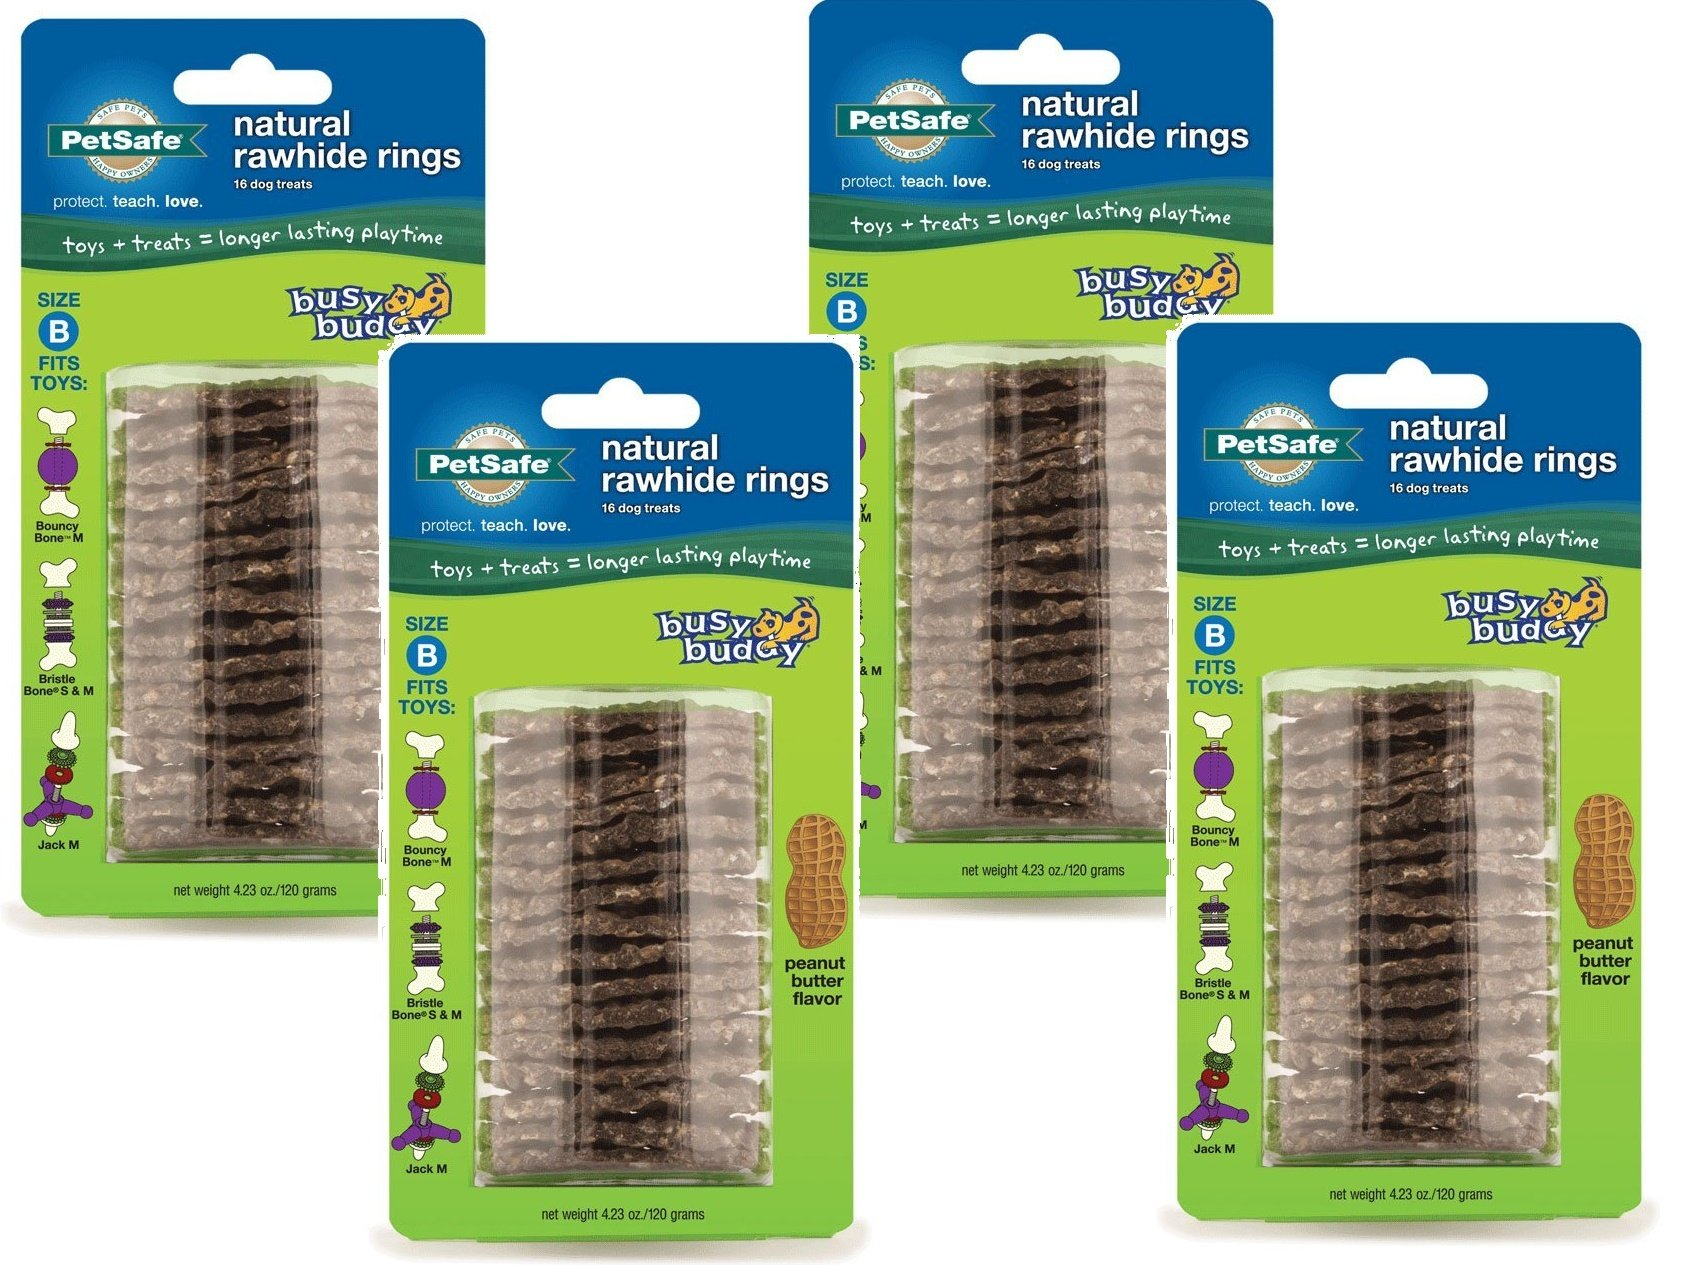 (4 Pack) PetSafe Busy Buddy Refill Ring Dog Treats for select Busy Buddy Dog Toys, Peanut Butter Flavored Natural Rawhide, Size B by PetSafe